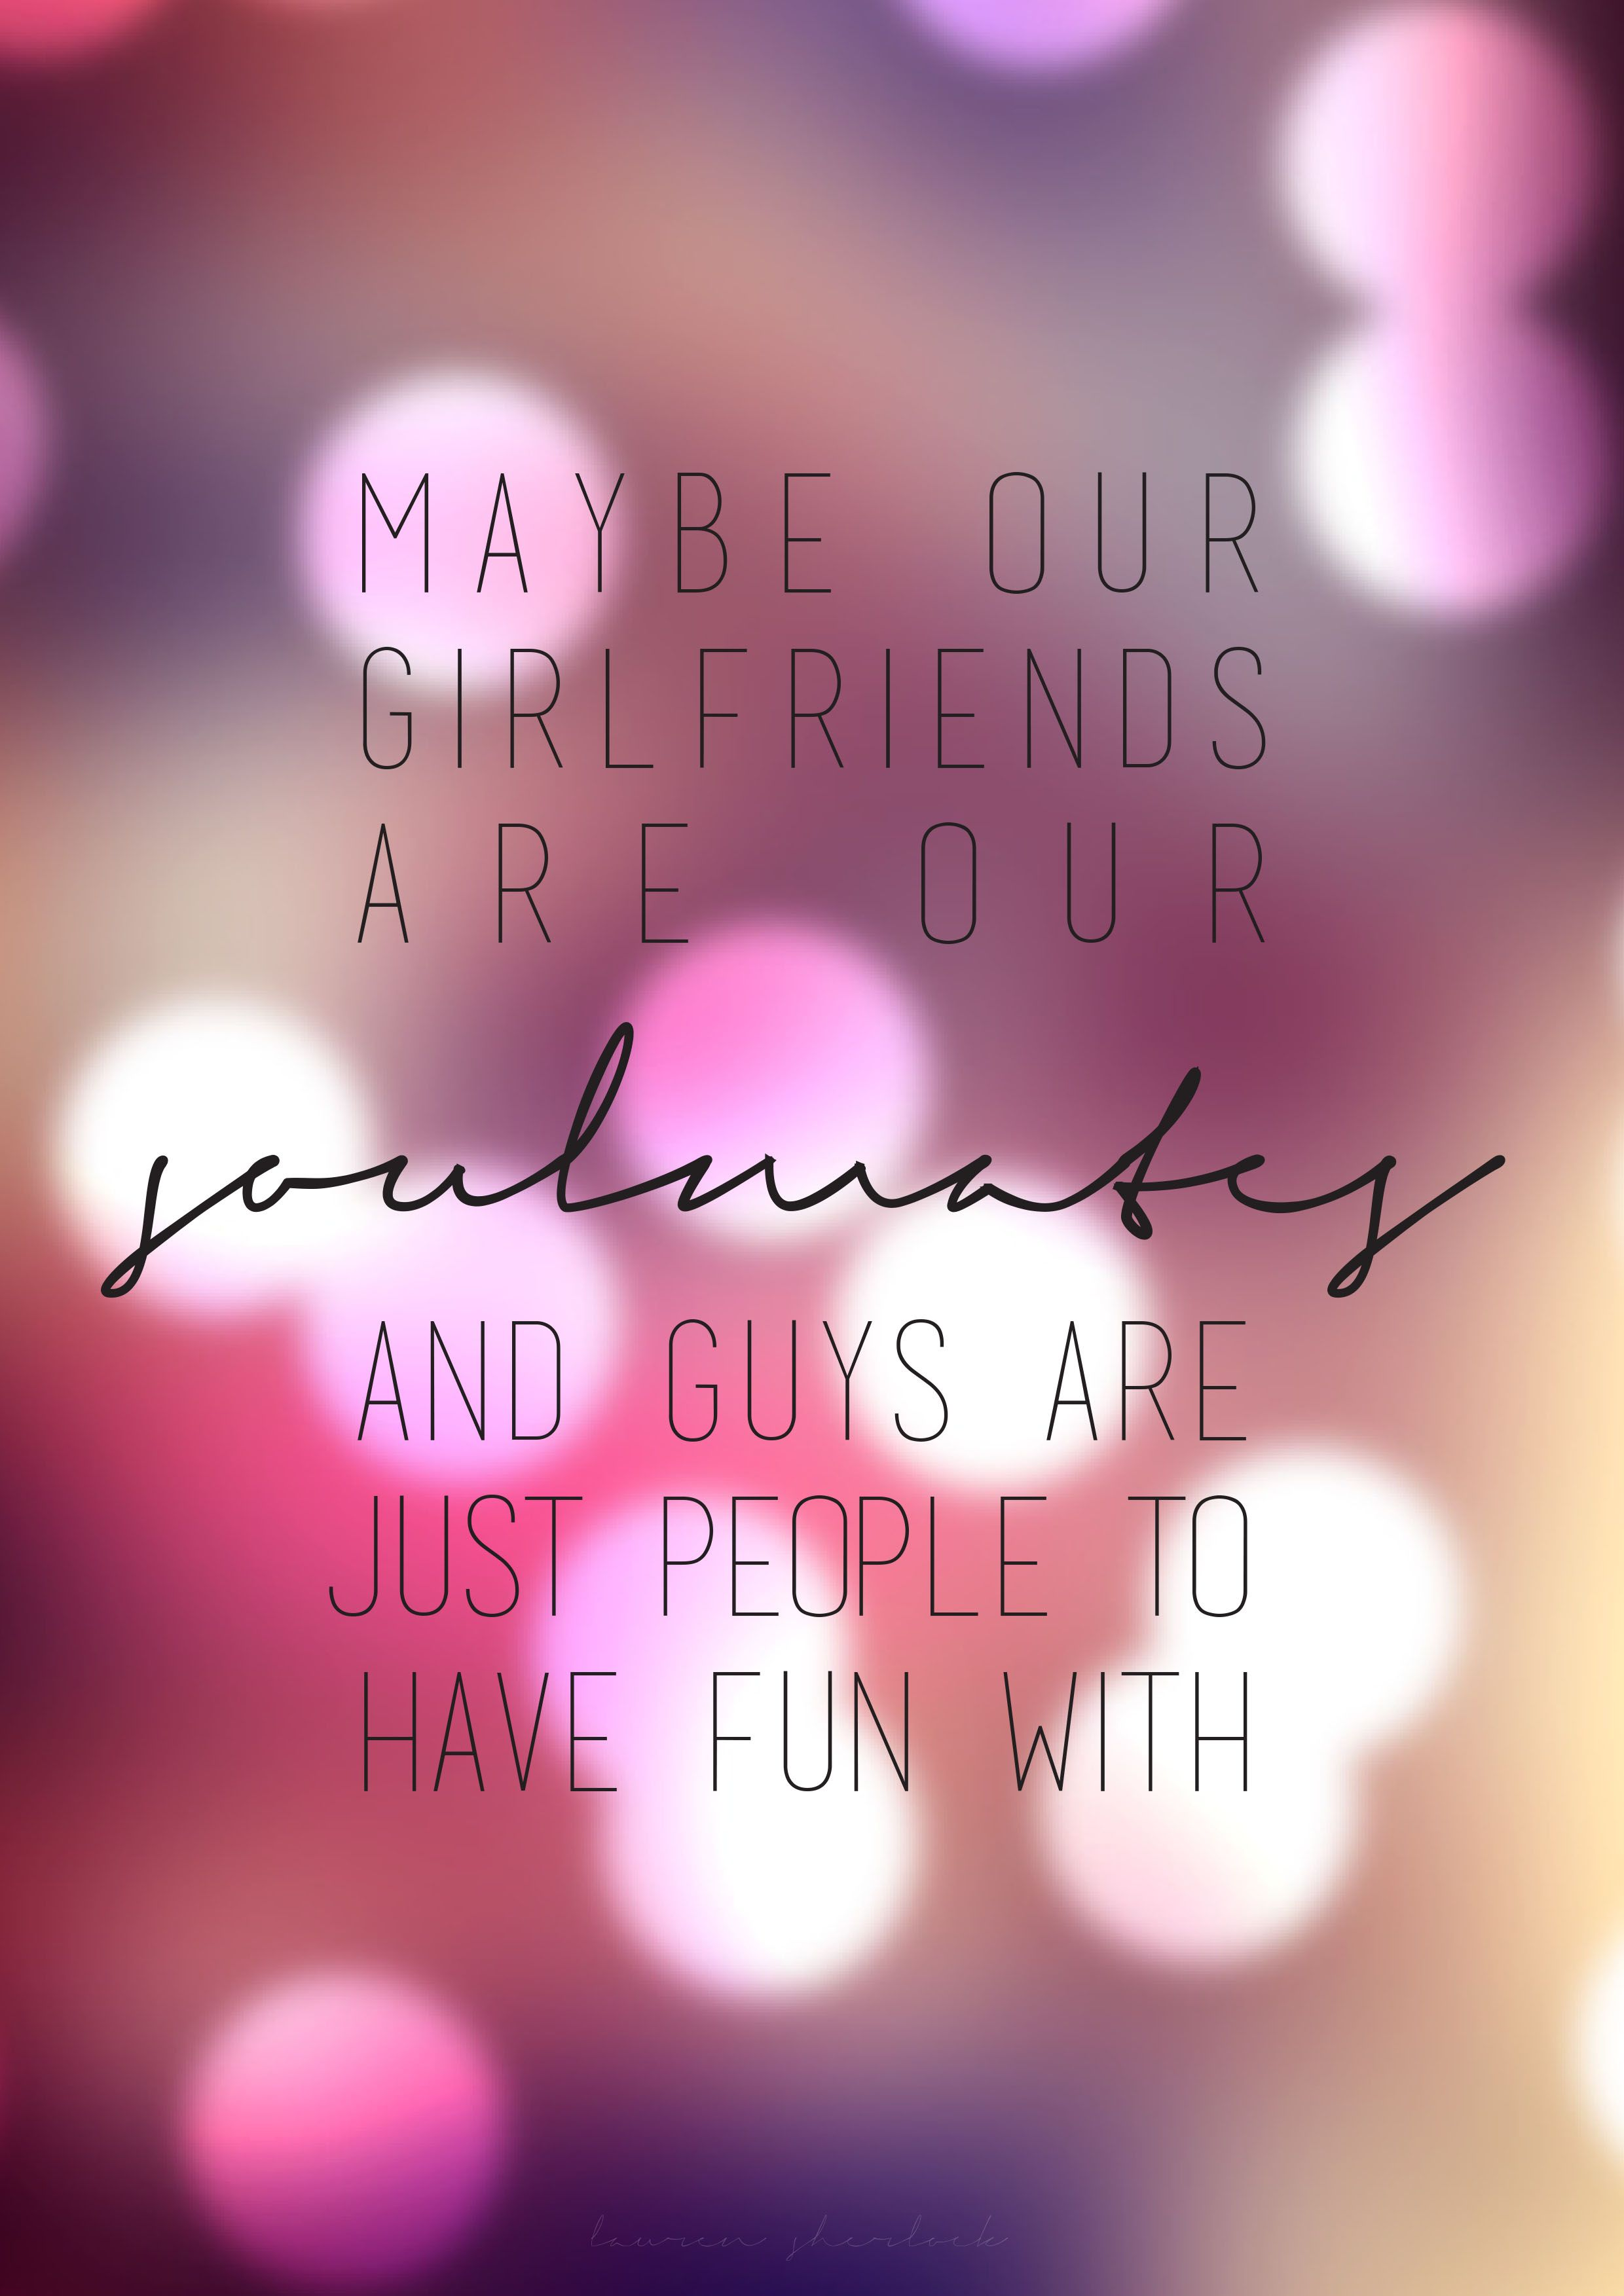 Maybe our girlfriends are our soulmates and guys are just people to have fun with